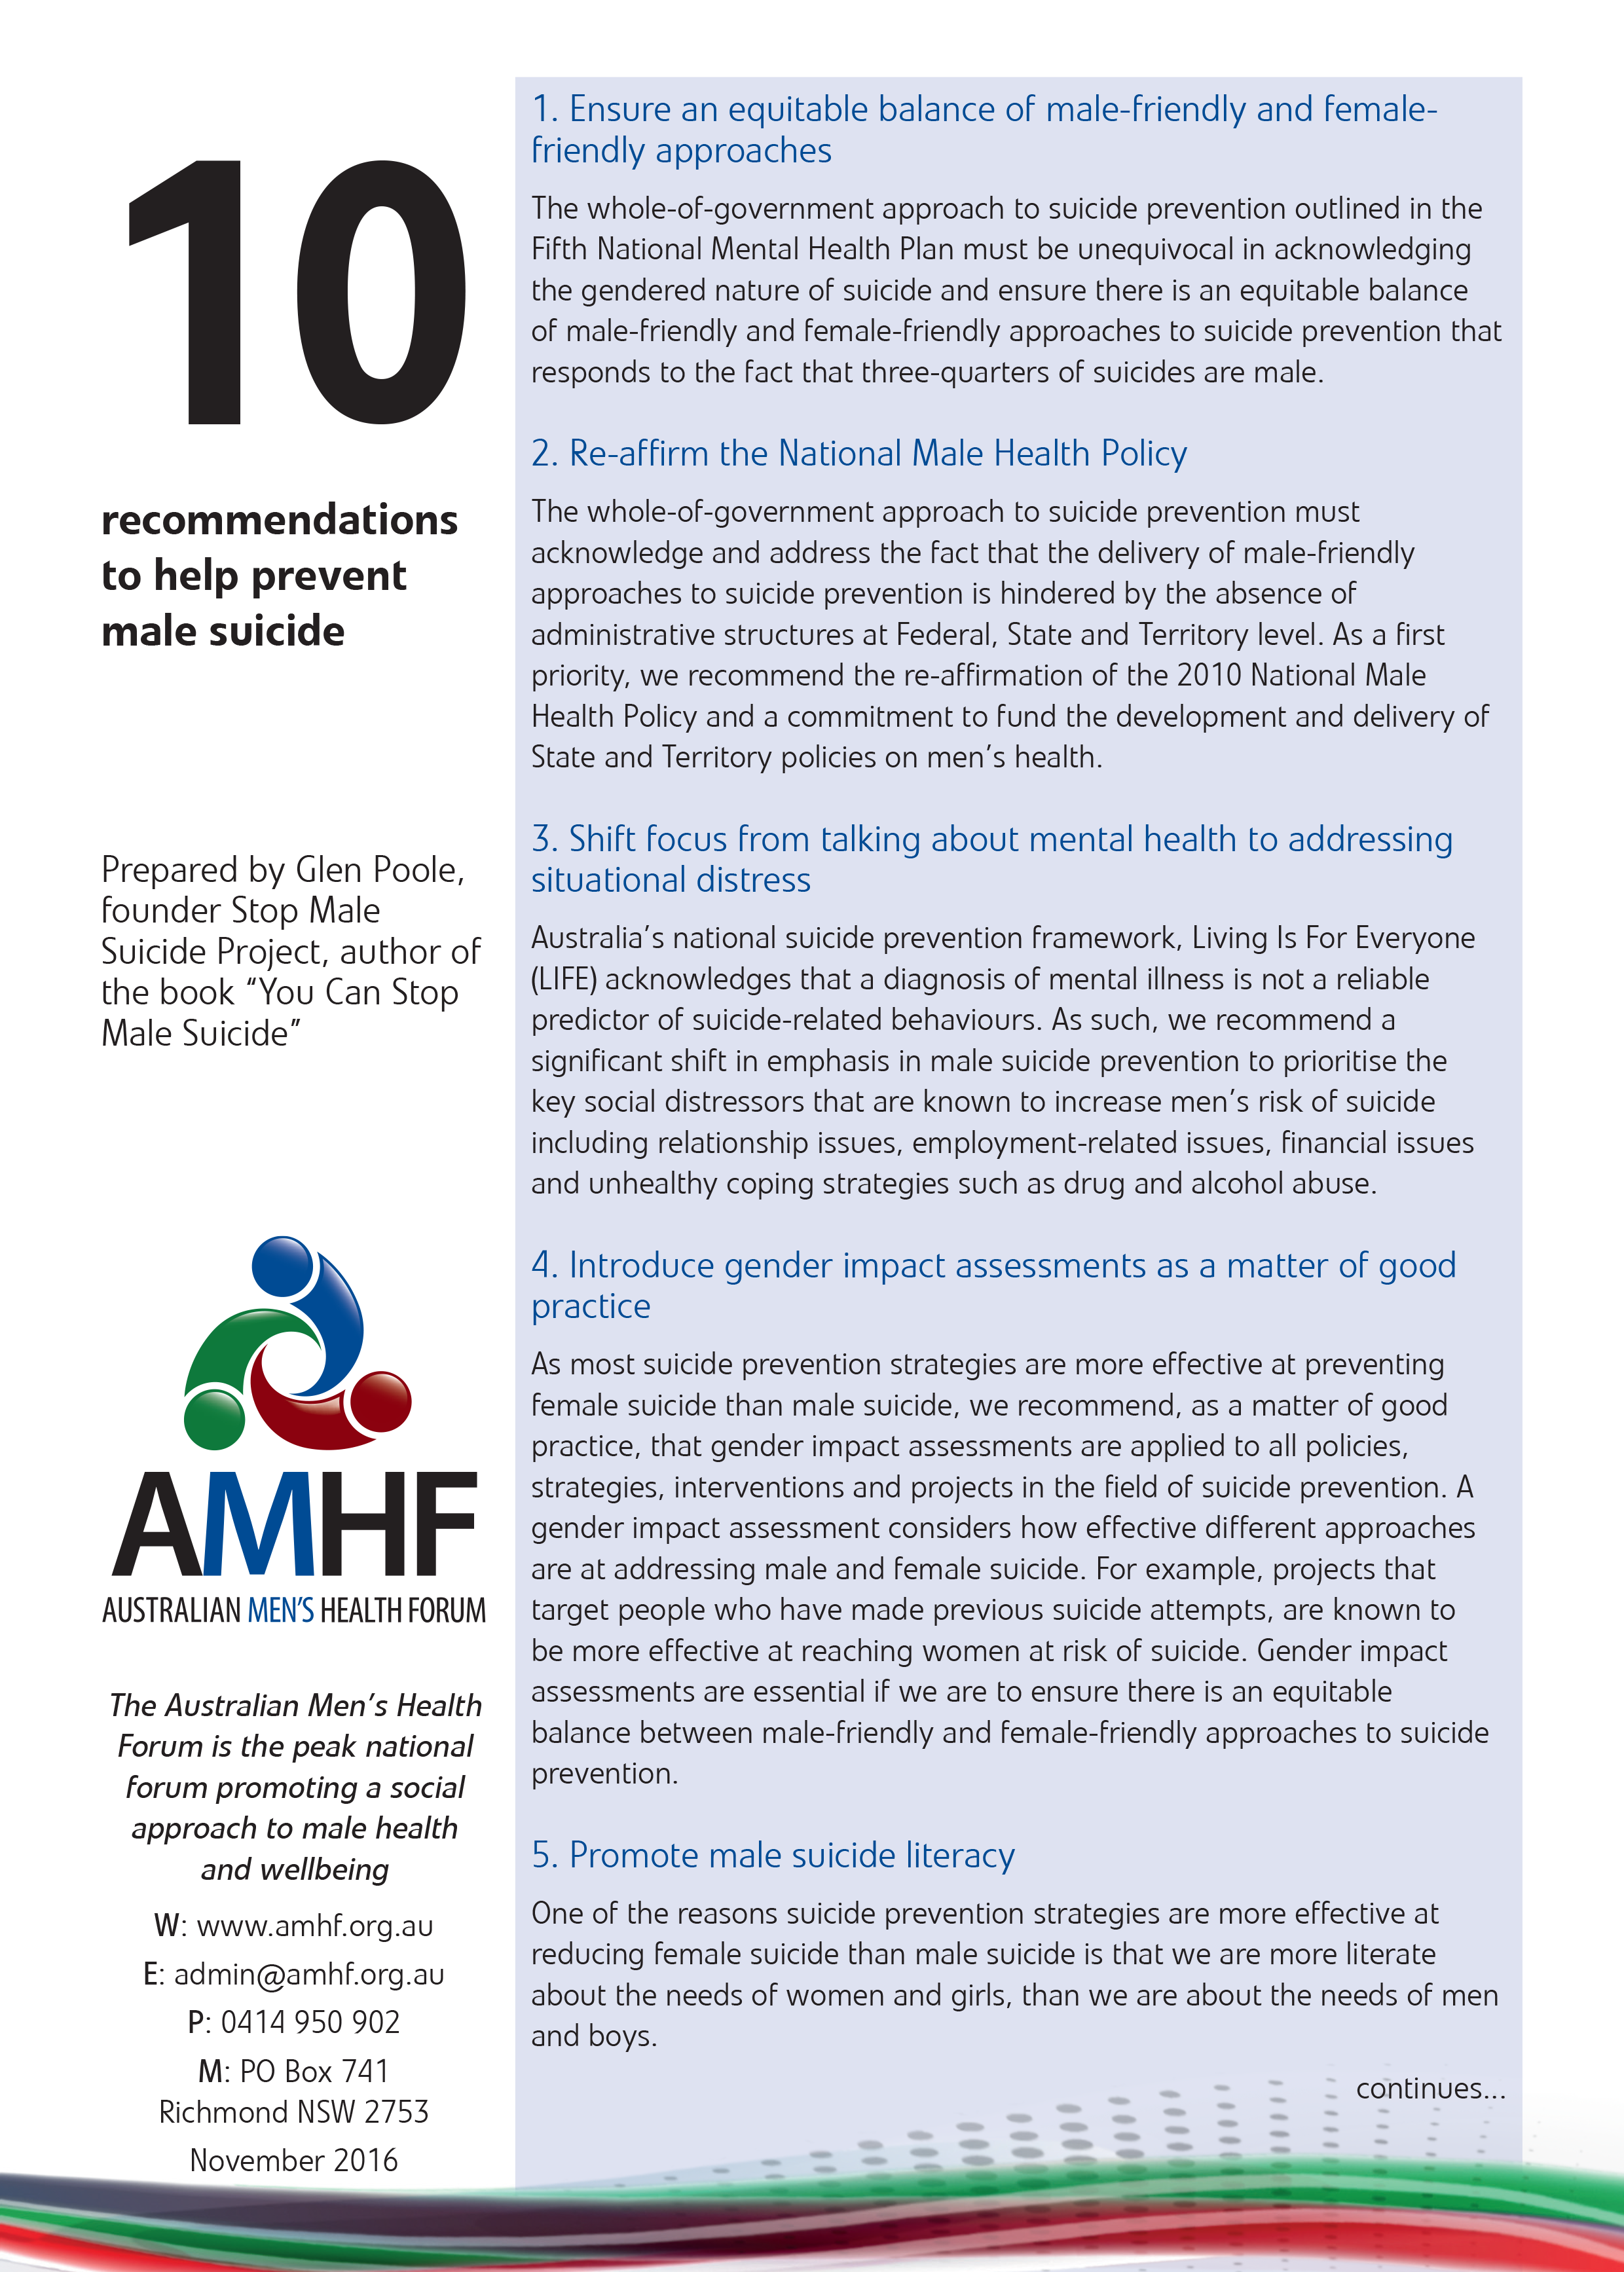 009_KP04_10_Reccomendations_to_Prevent_Male_Suicide_2016_Summary_-1.png